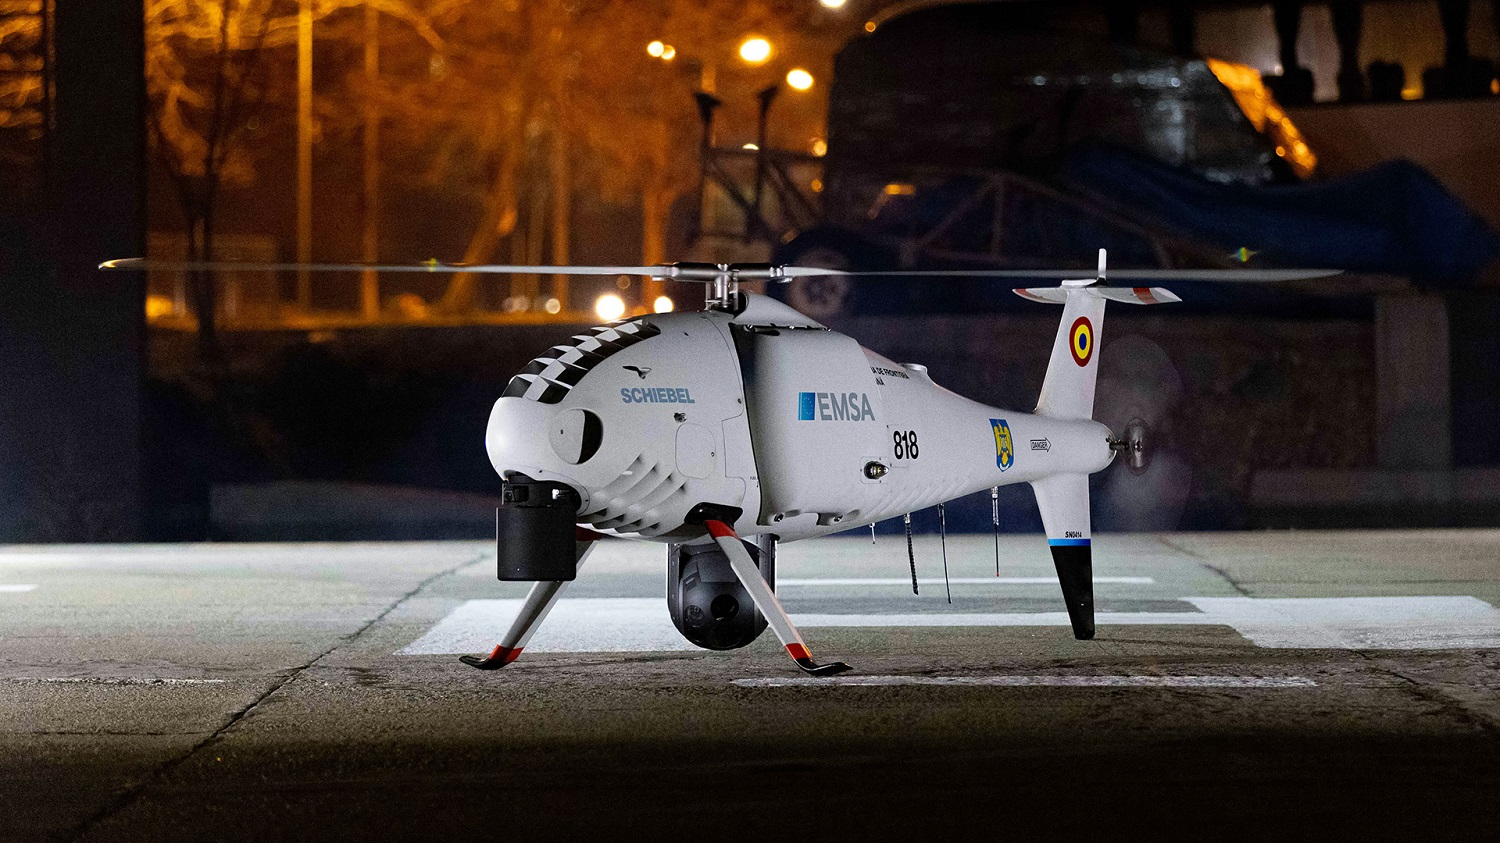 EMSA Awards Schiebel Group Contract to Support Spanish Maritime Safety Agency CAMCOPTER S-100